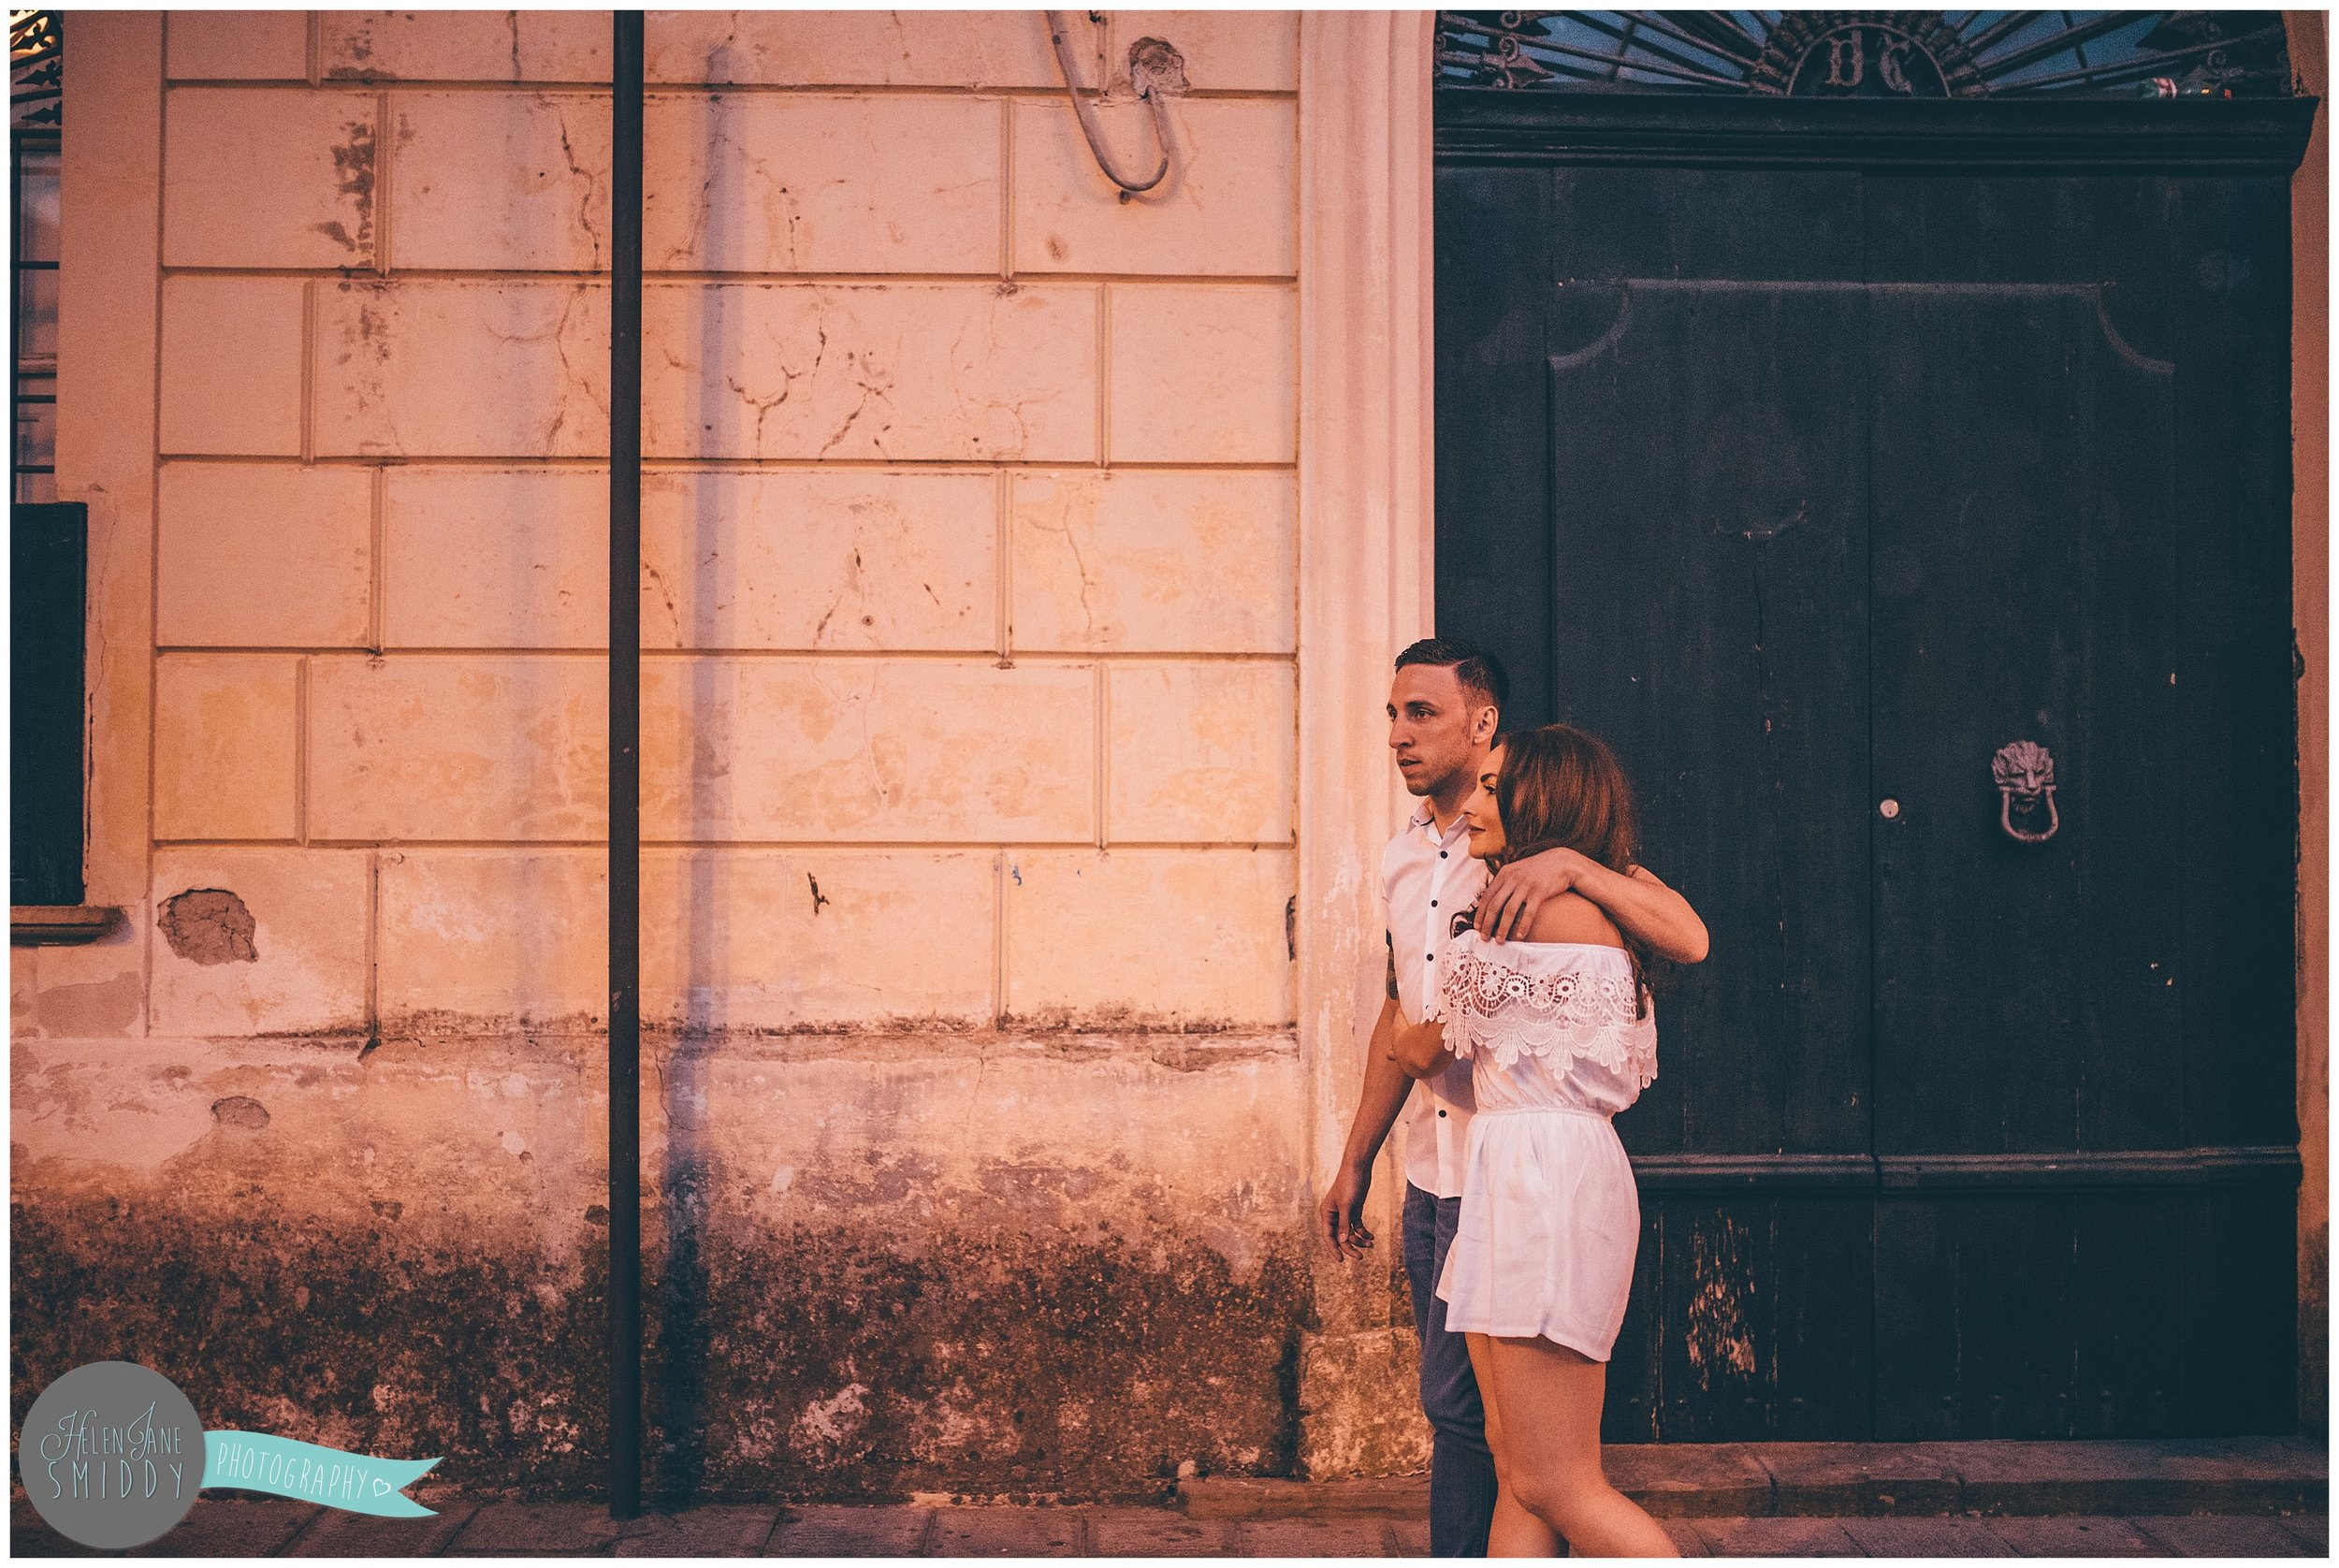 Sabrina and Dom stroll through the streets f Santa Maria di Castellabate for their pre-wedding photoshoot.